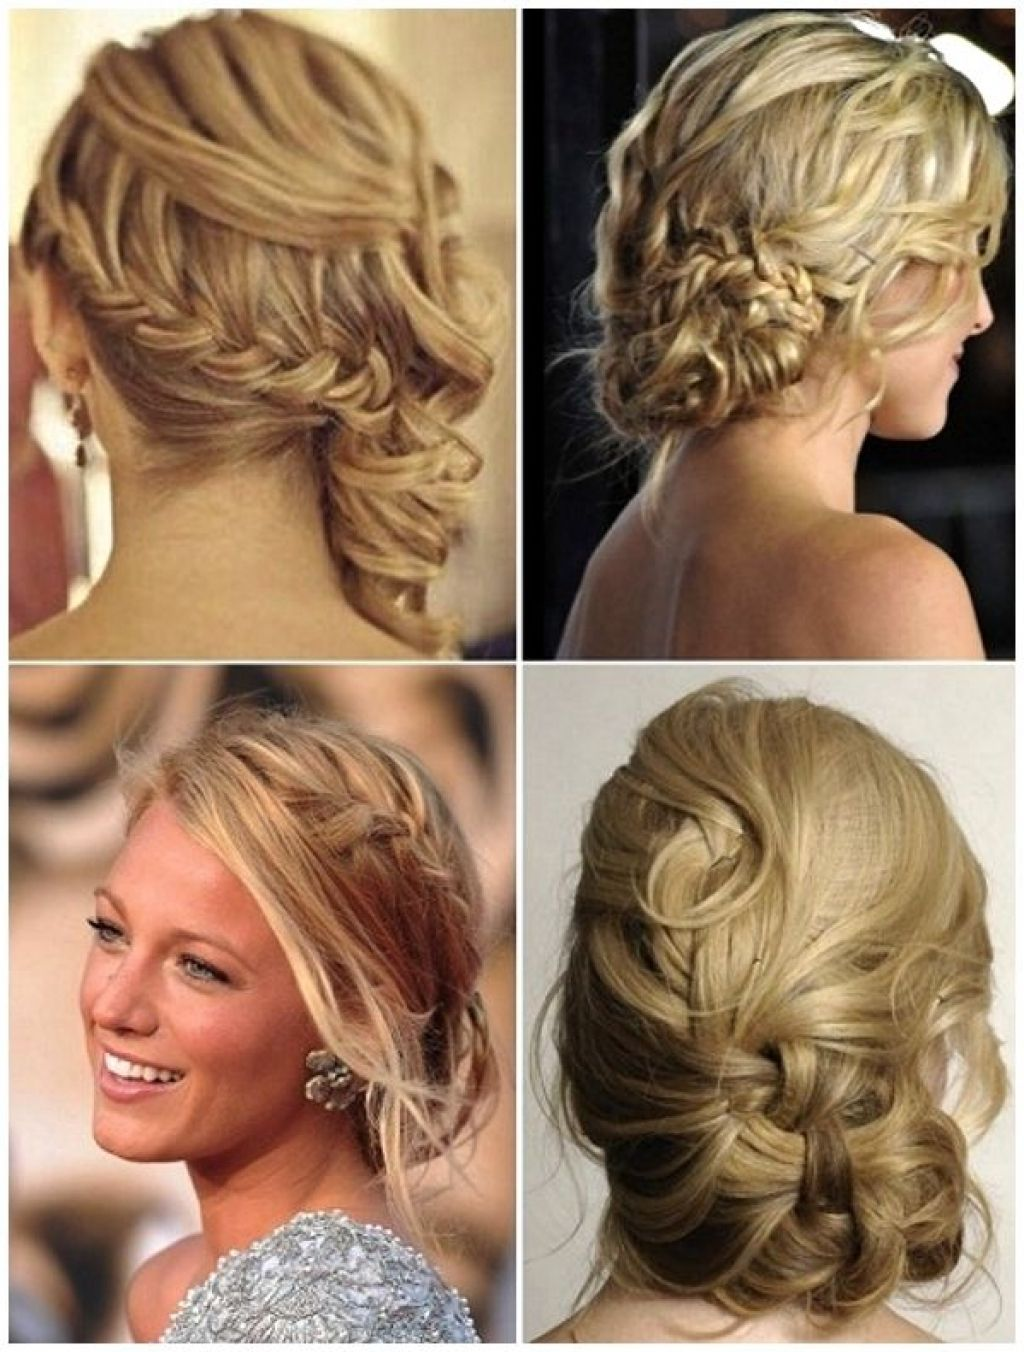 Hairstyle For Wedding Guest Brides Hairstyle Ideas Short Hair Hairstyles For Wedding Guests Wedding Guest Hairstyles Wedding Hair Side Bride Hairstyles